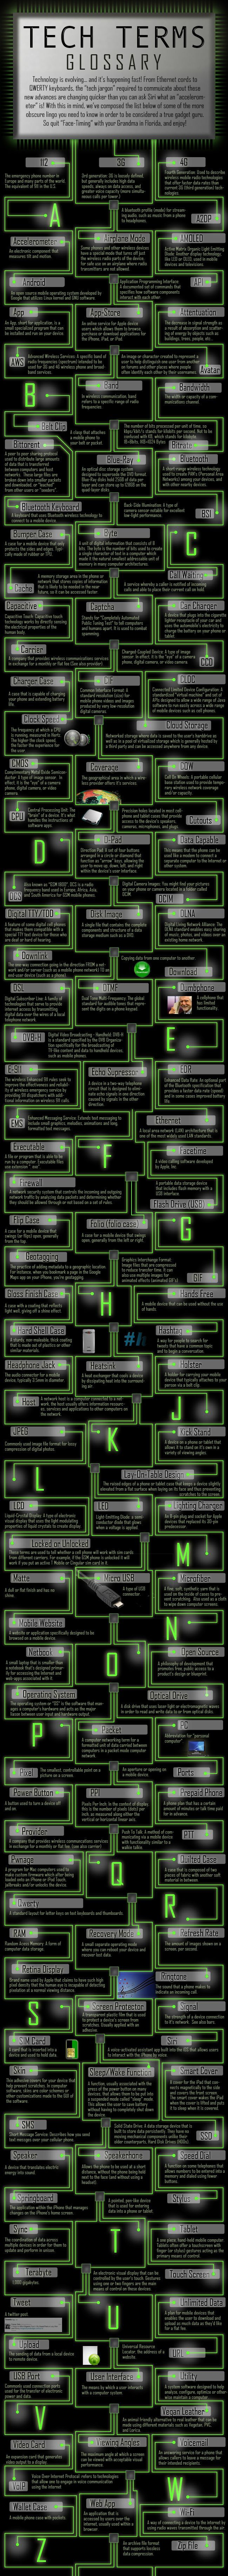 Become A Real Geek: Learn The True Tech Lingo [Infographic]